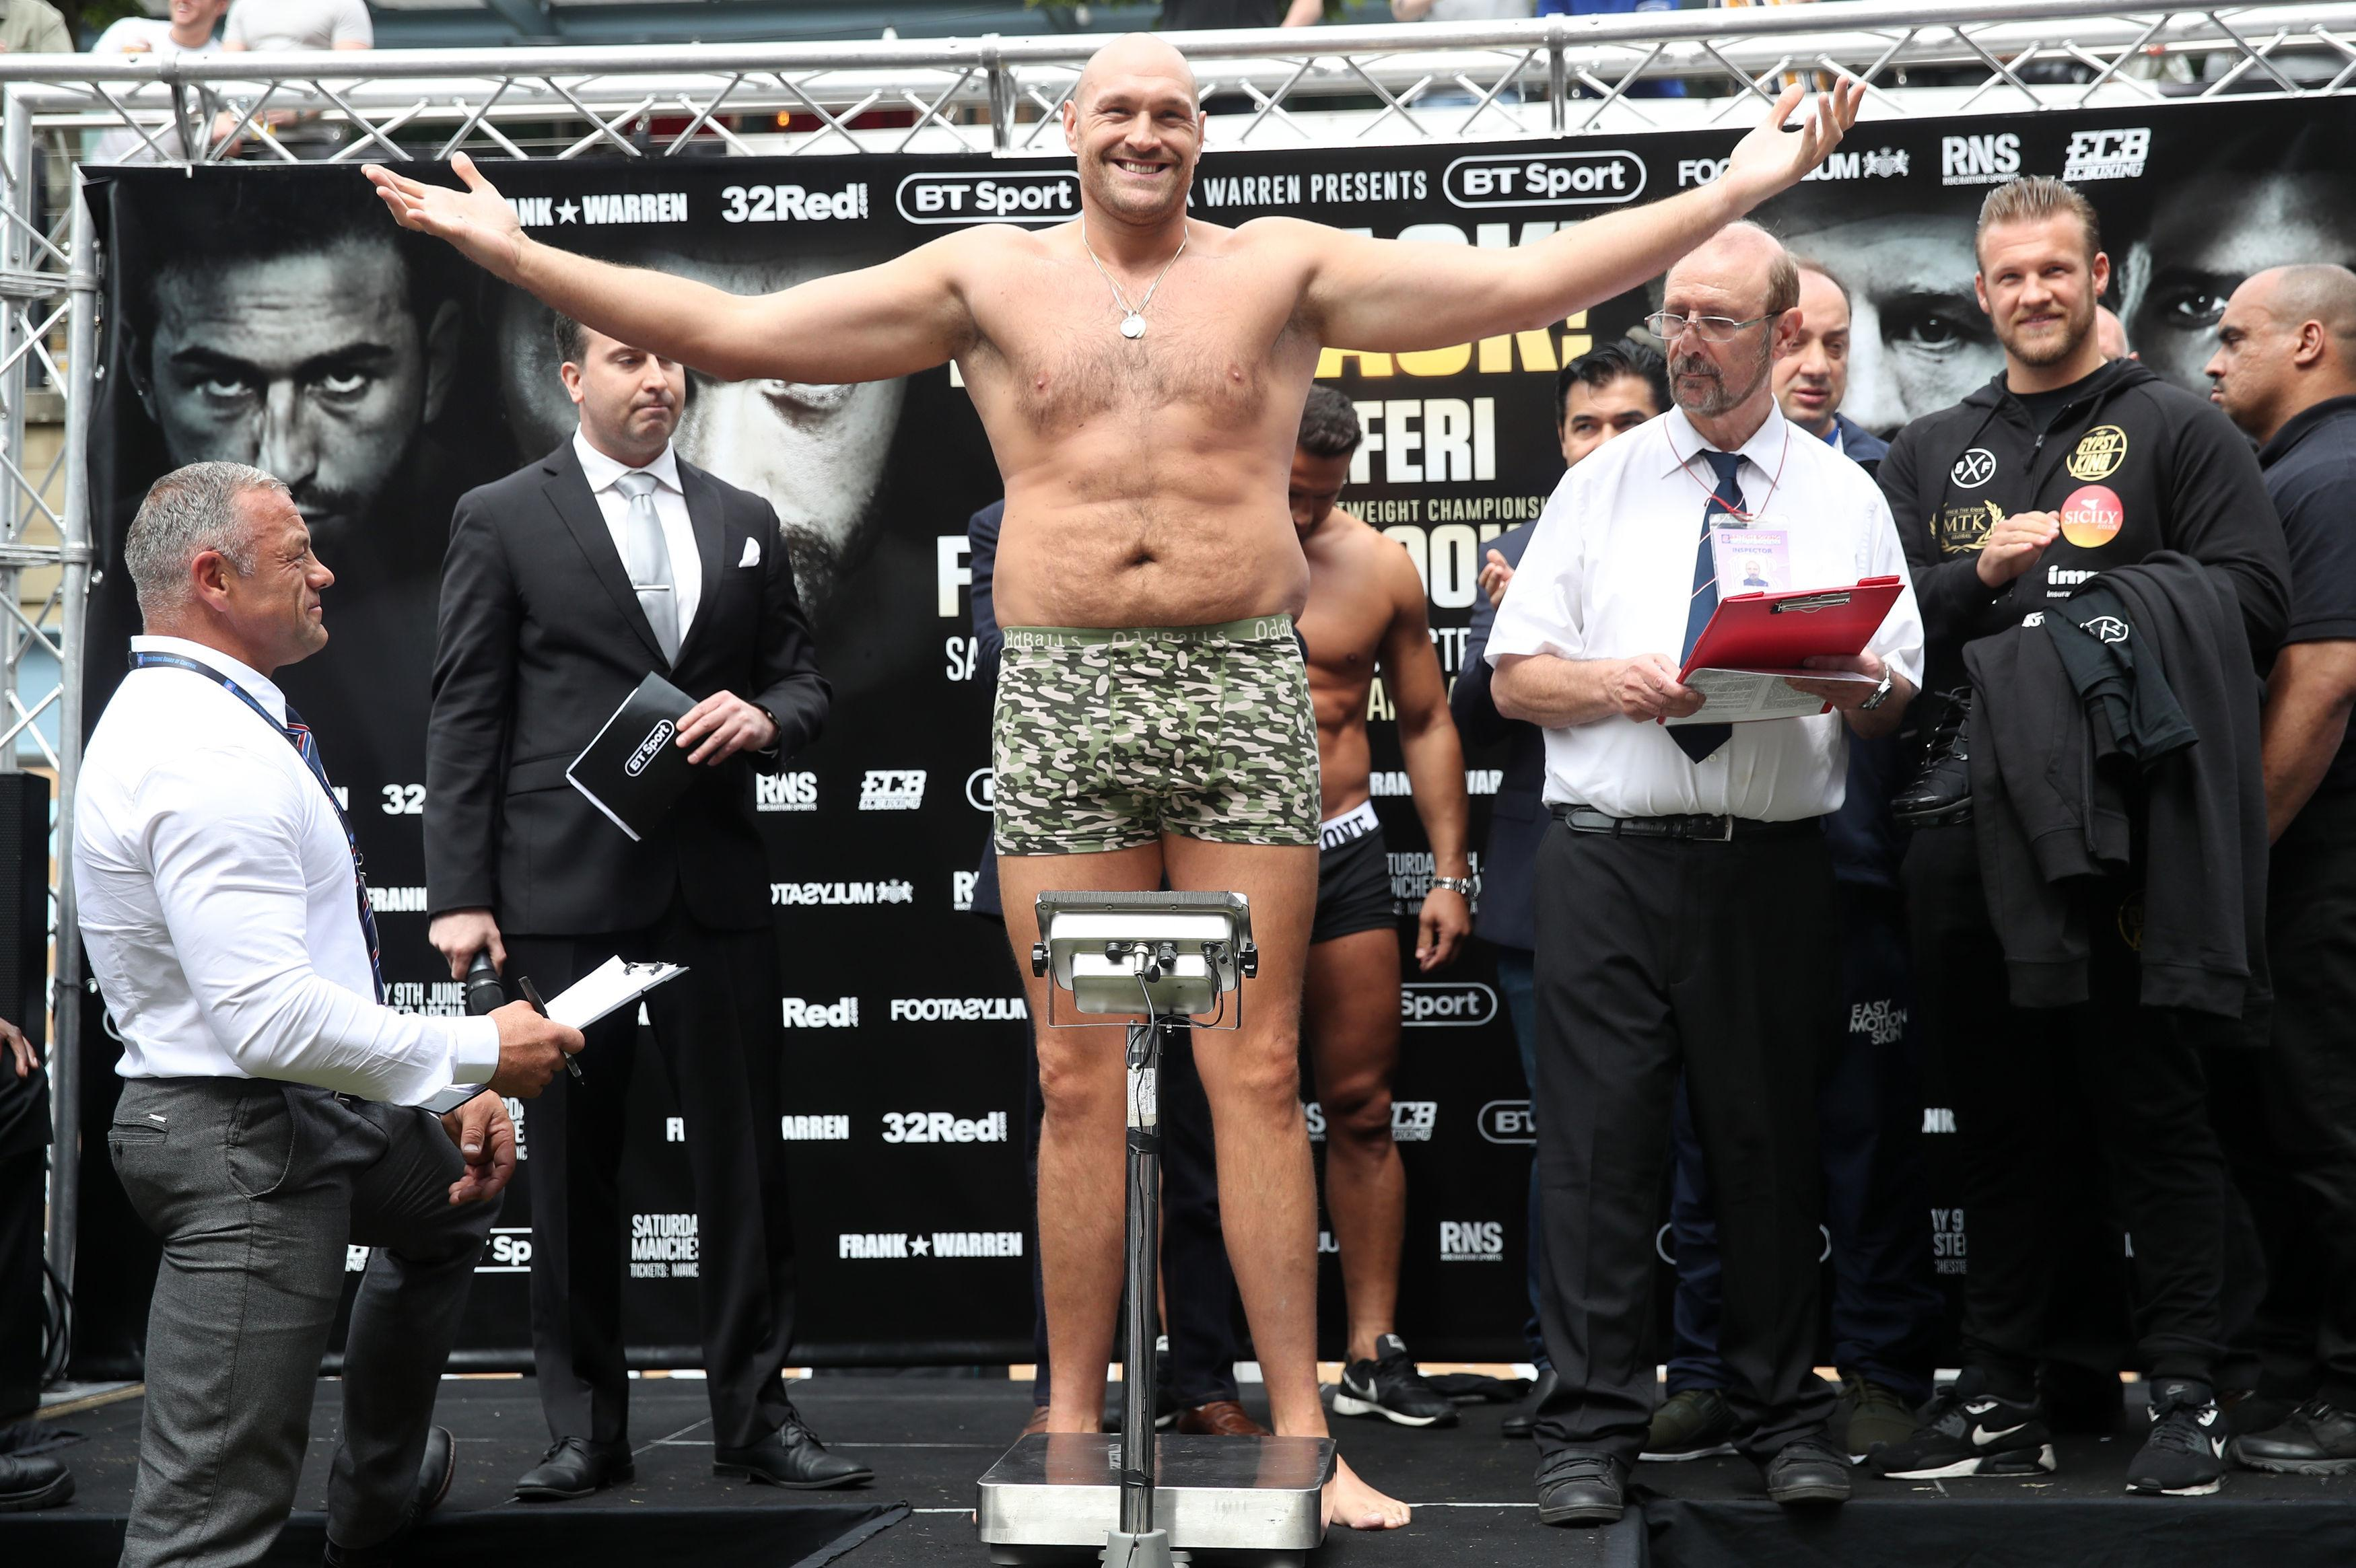 Frank Warren says Tyson Fury should have worn something over than the tight pants he chose for the weigh-in